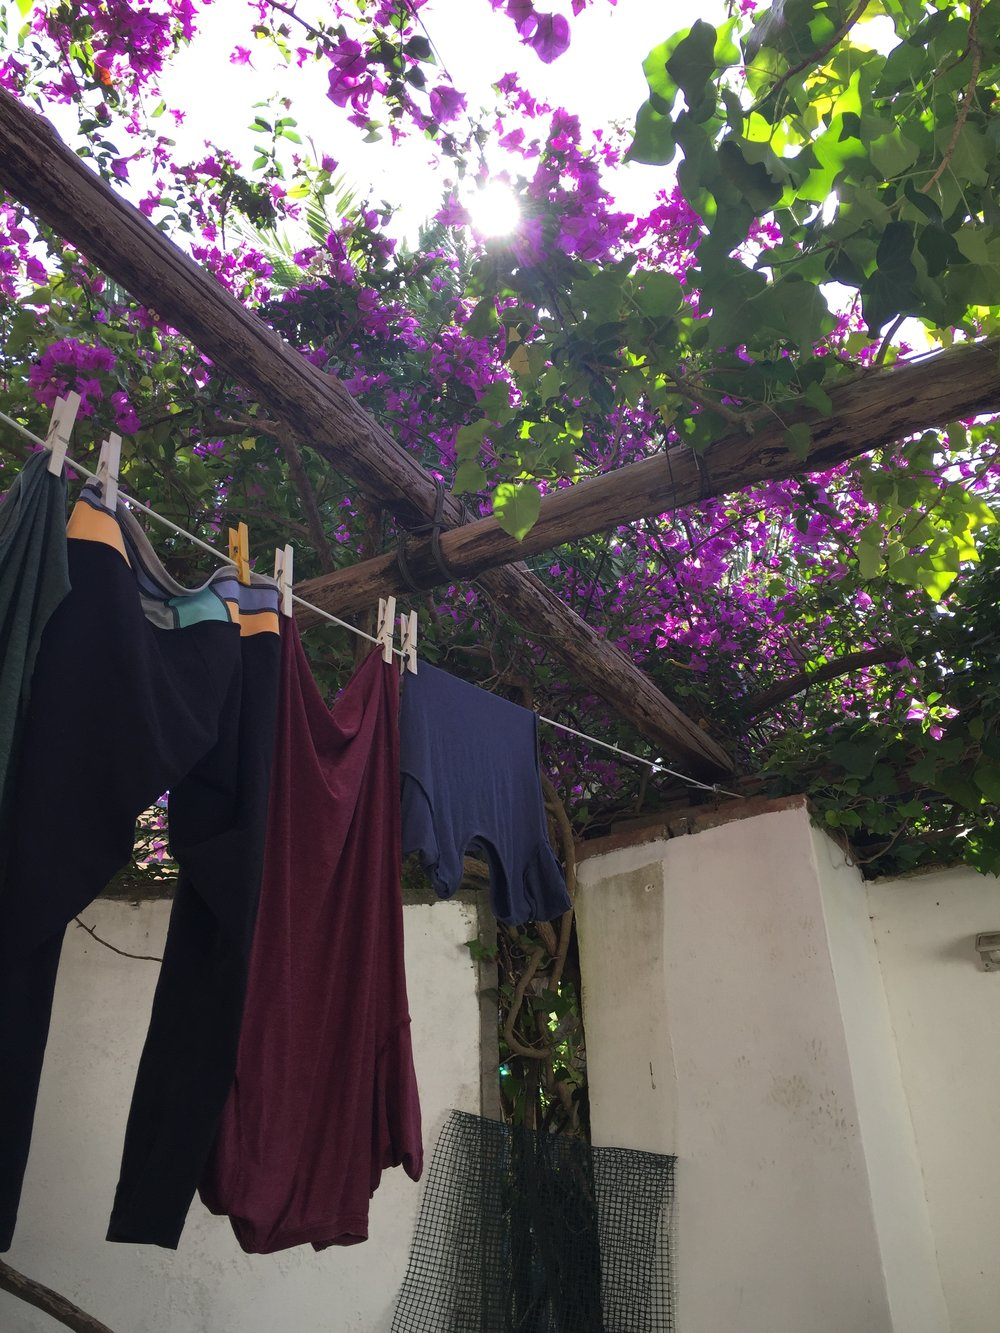 Laundry Drying on the porch in Capri, Italy